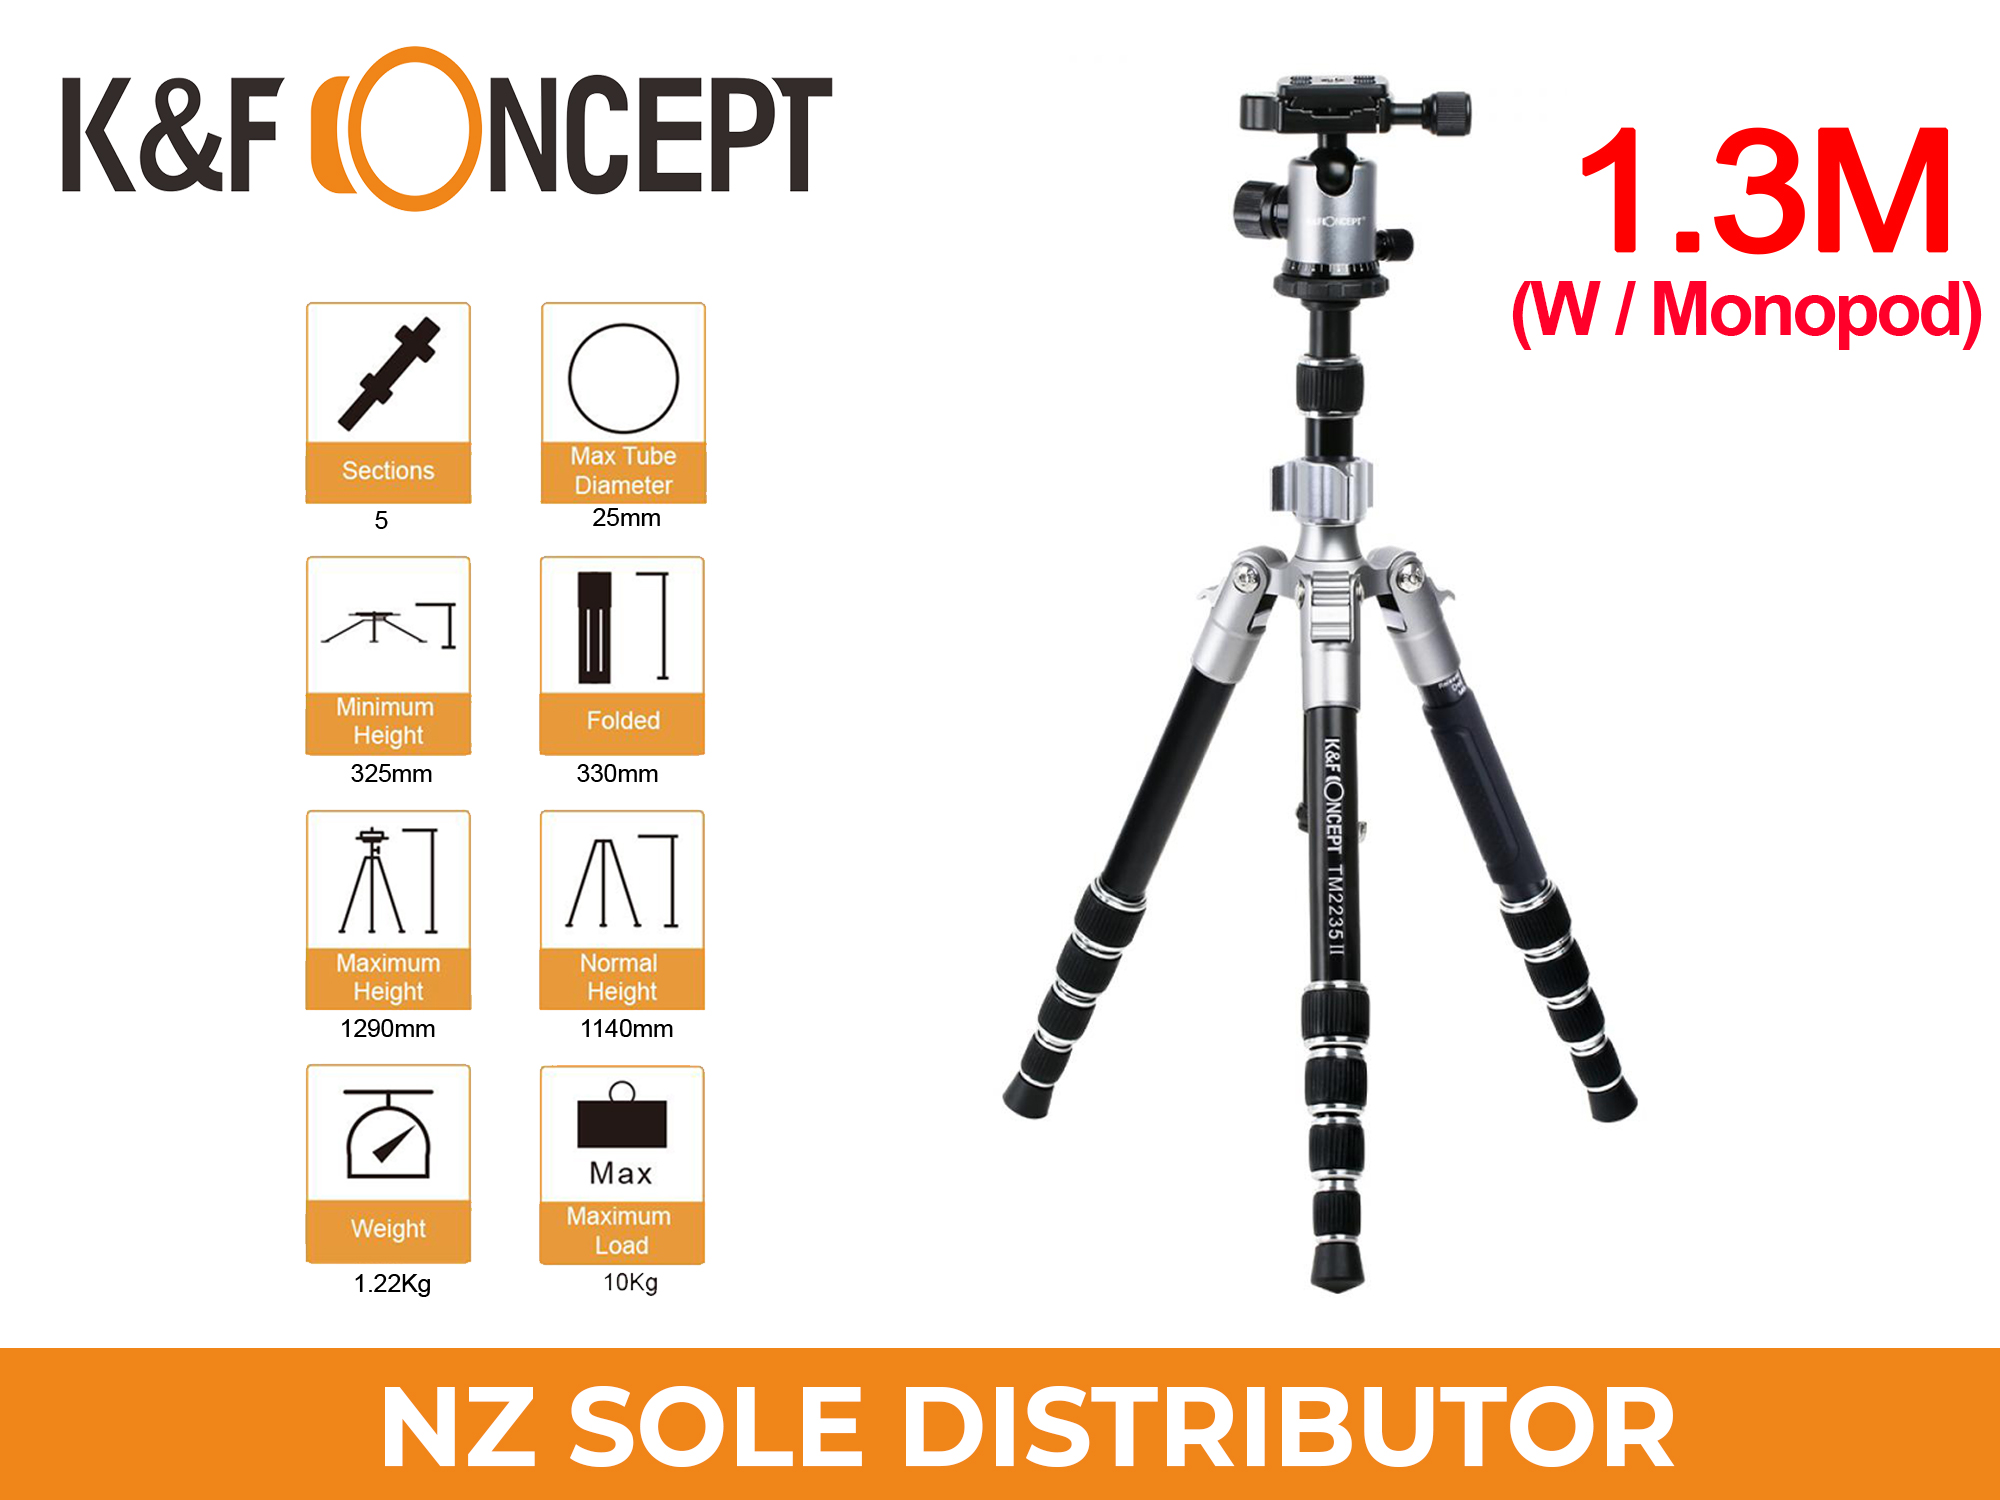 K&F Concept TM2235 II Lightweight DSLR Camera Aluminum Tripod With Monopod